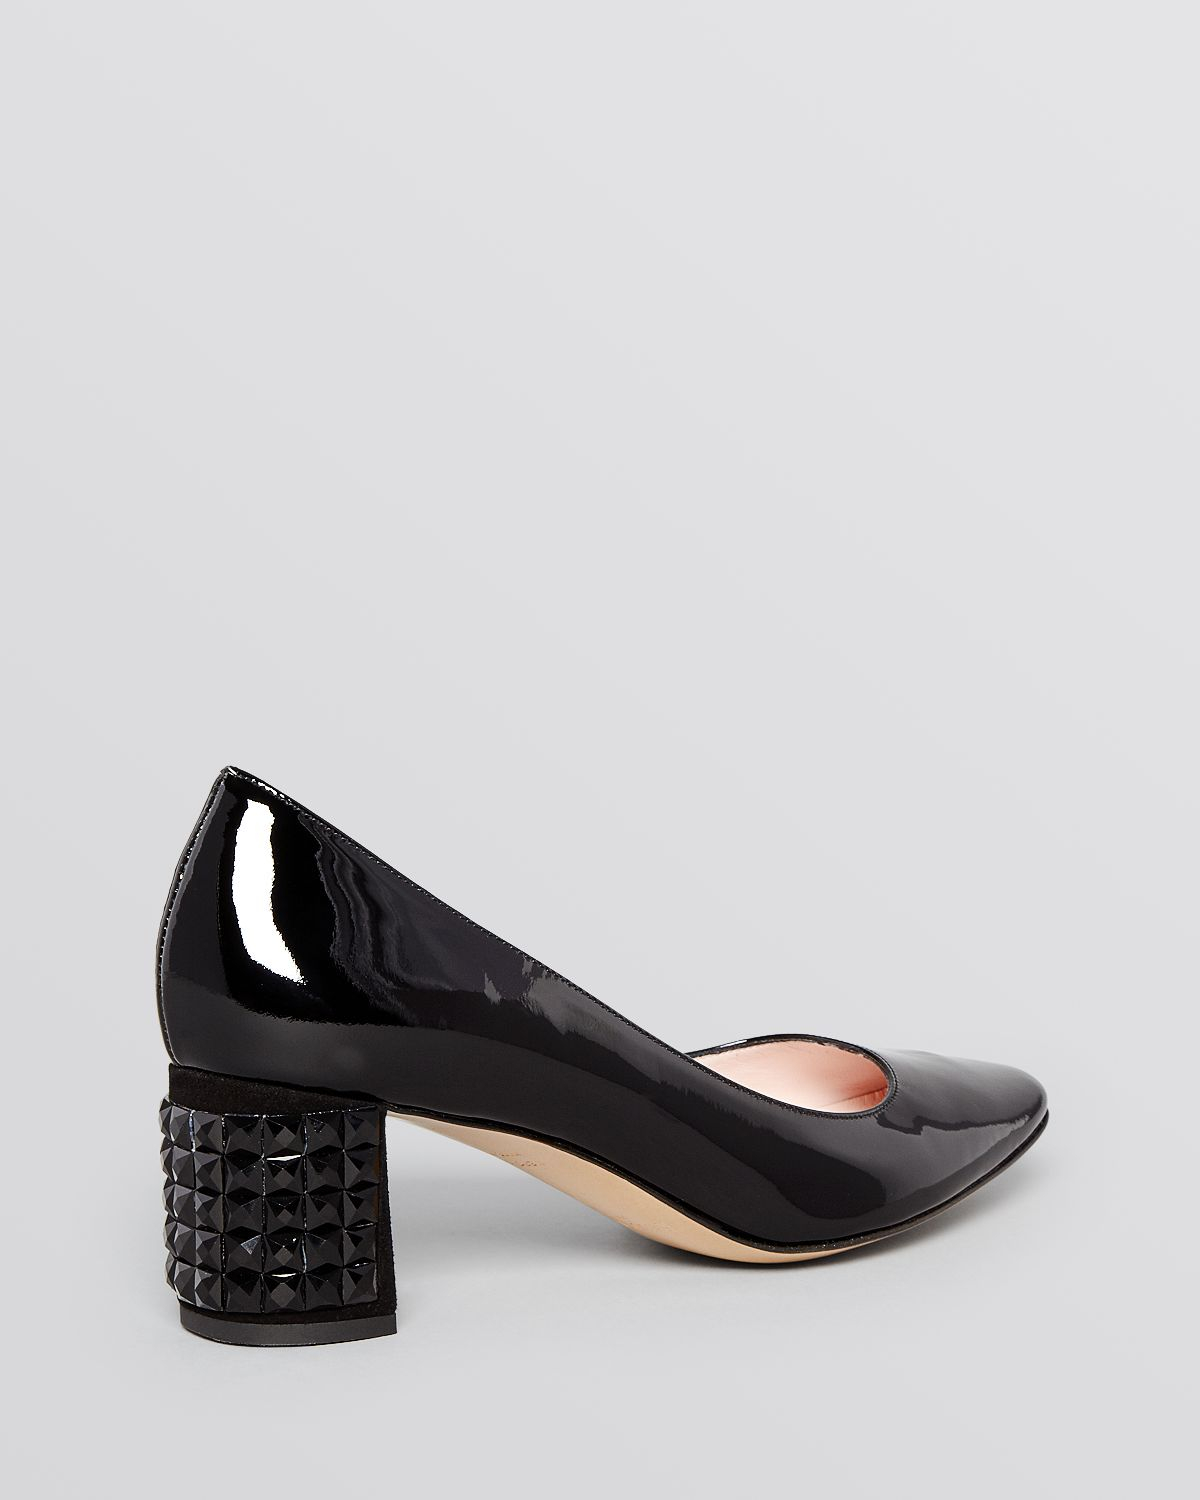 8382e9186890 Gallery. Previously sold at  Bloomingdale s · Women s Spiked Shoes ...